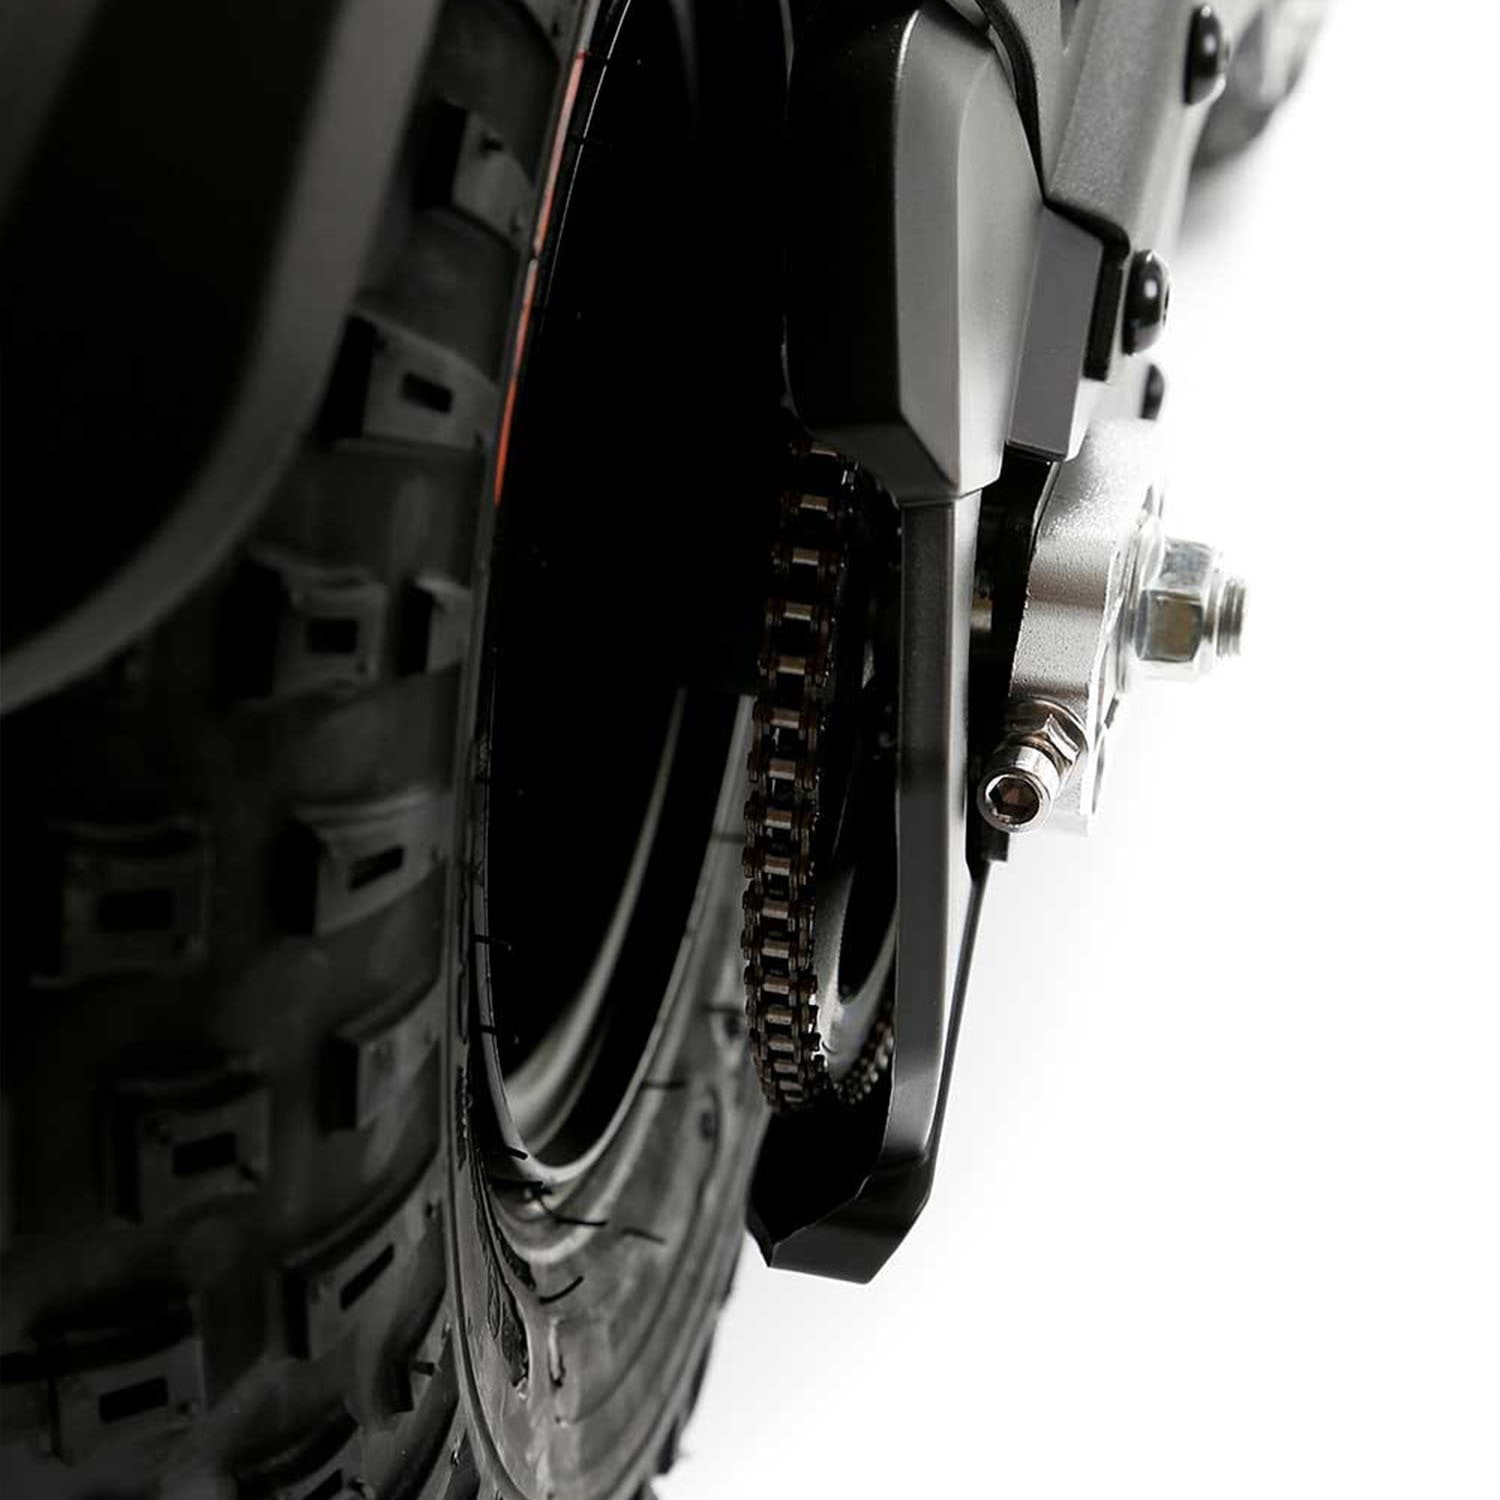 SXT Monster Off road Electric Scooter Chain 2